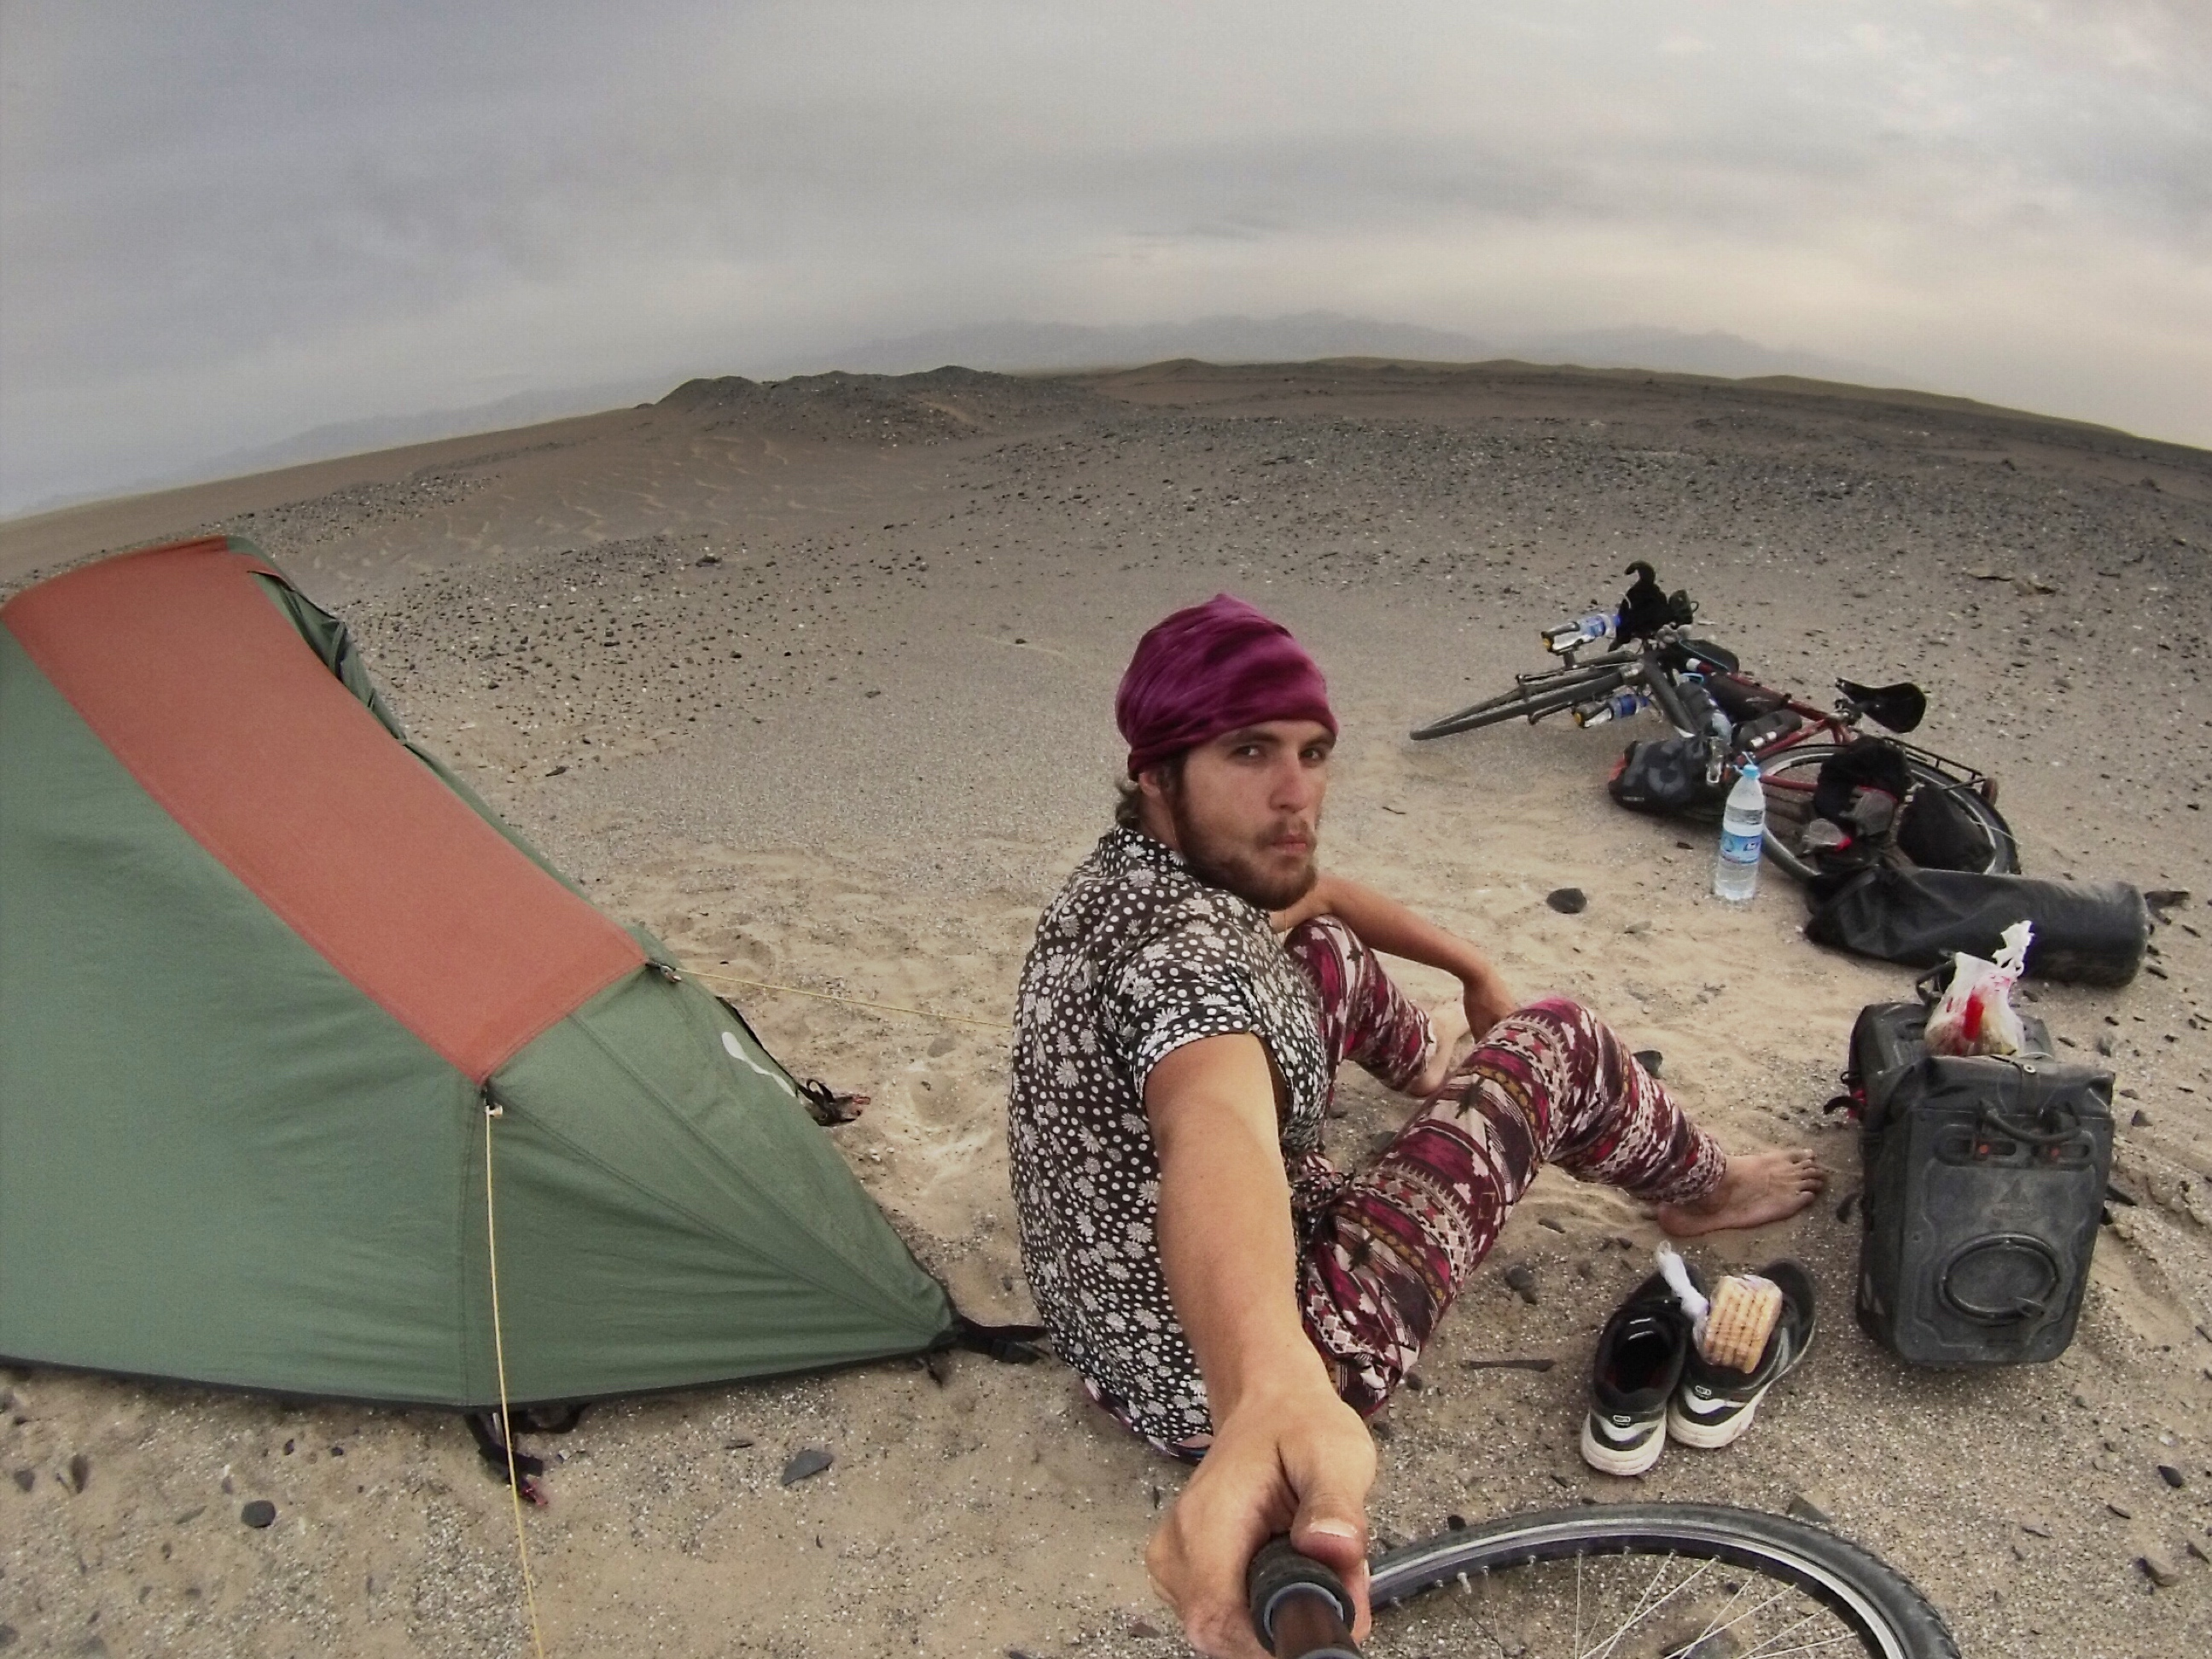 Camping in the Taklamakan desert